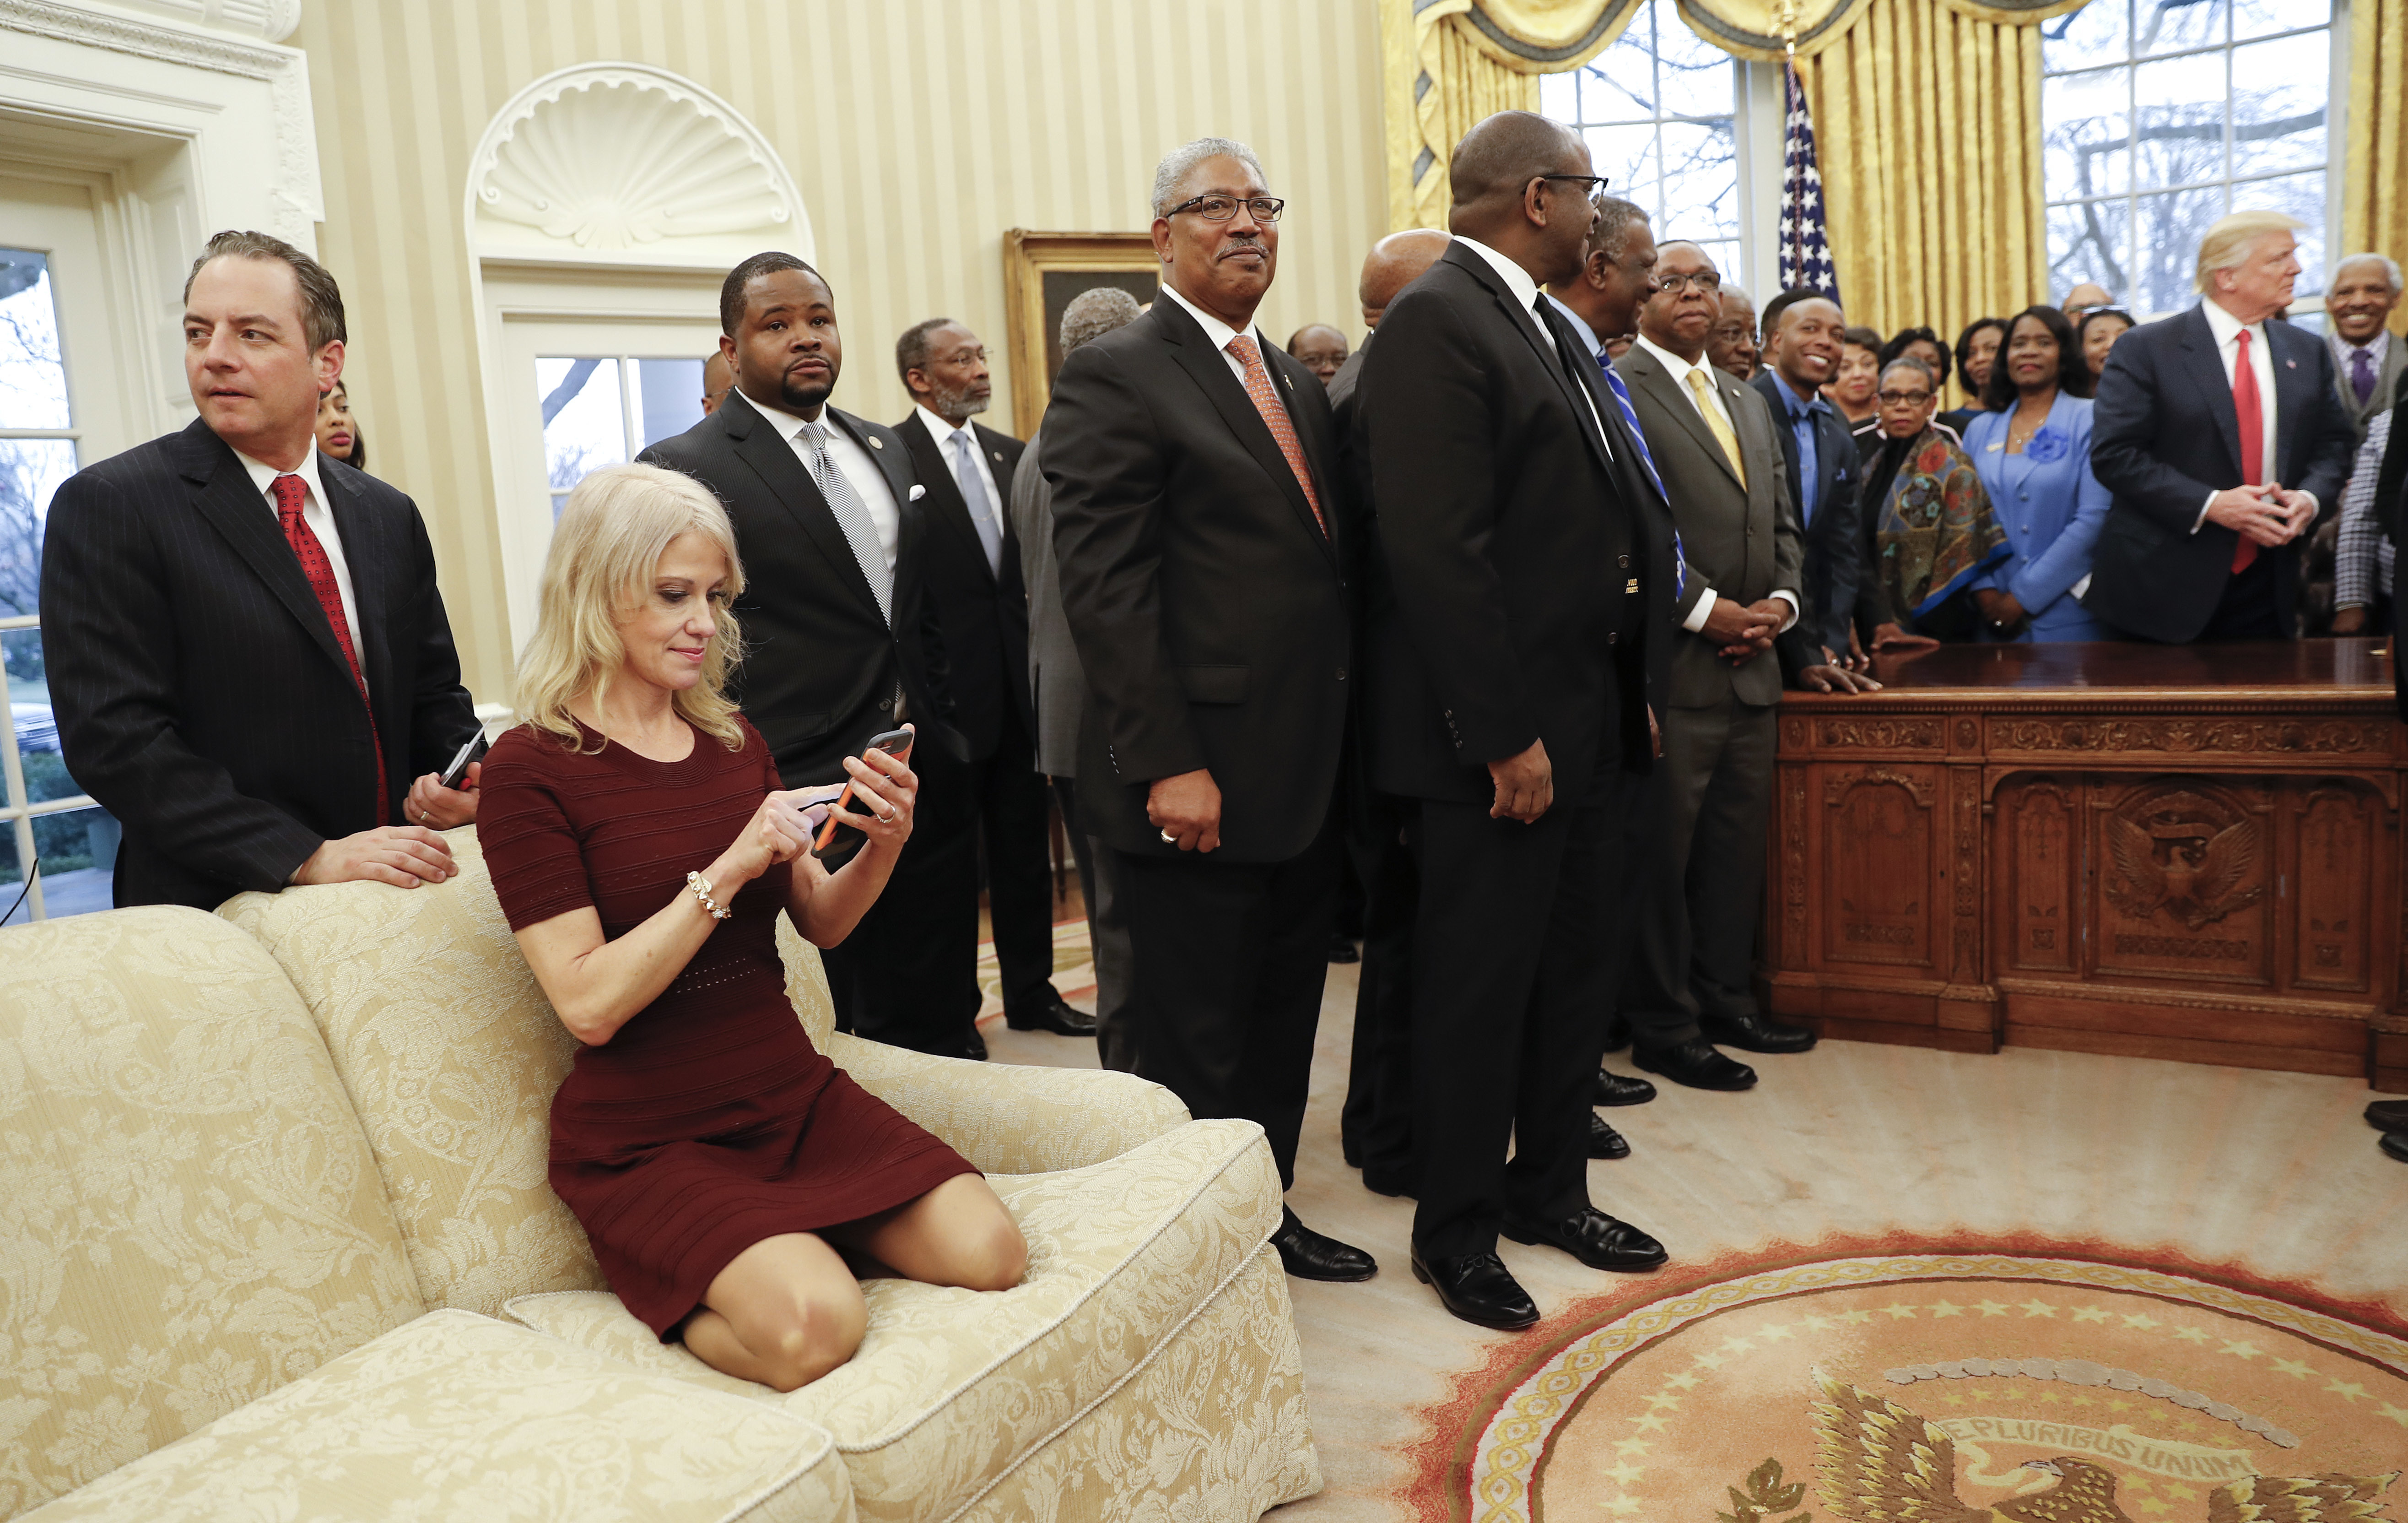 Kellyanne Conway unplugged: Here's why I look haggard, you haters!